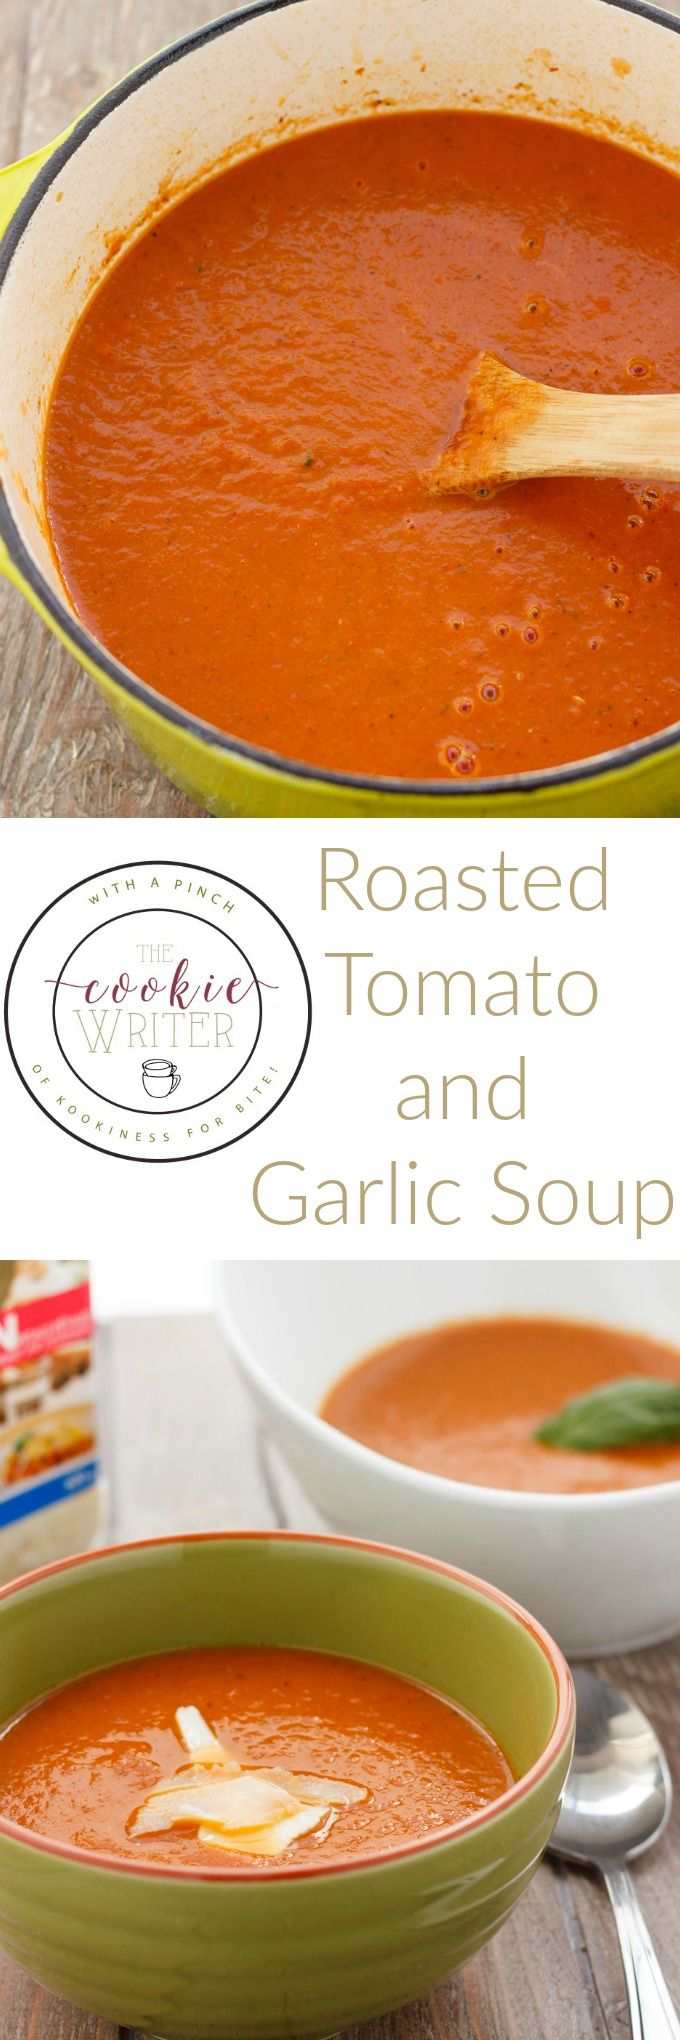 Roasted Tomato and Garlic Soup. Perfectly healthy, vegan, and gluten-free!